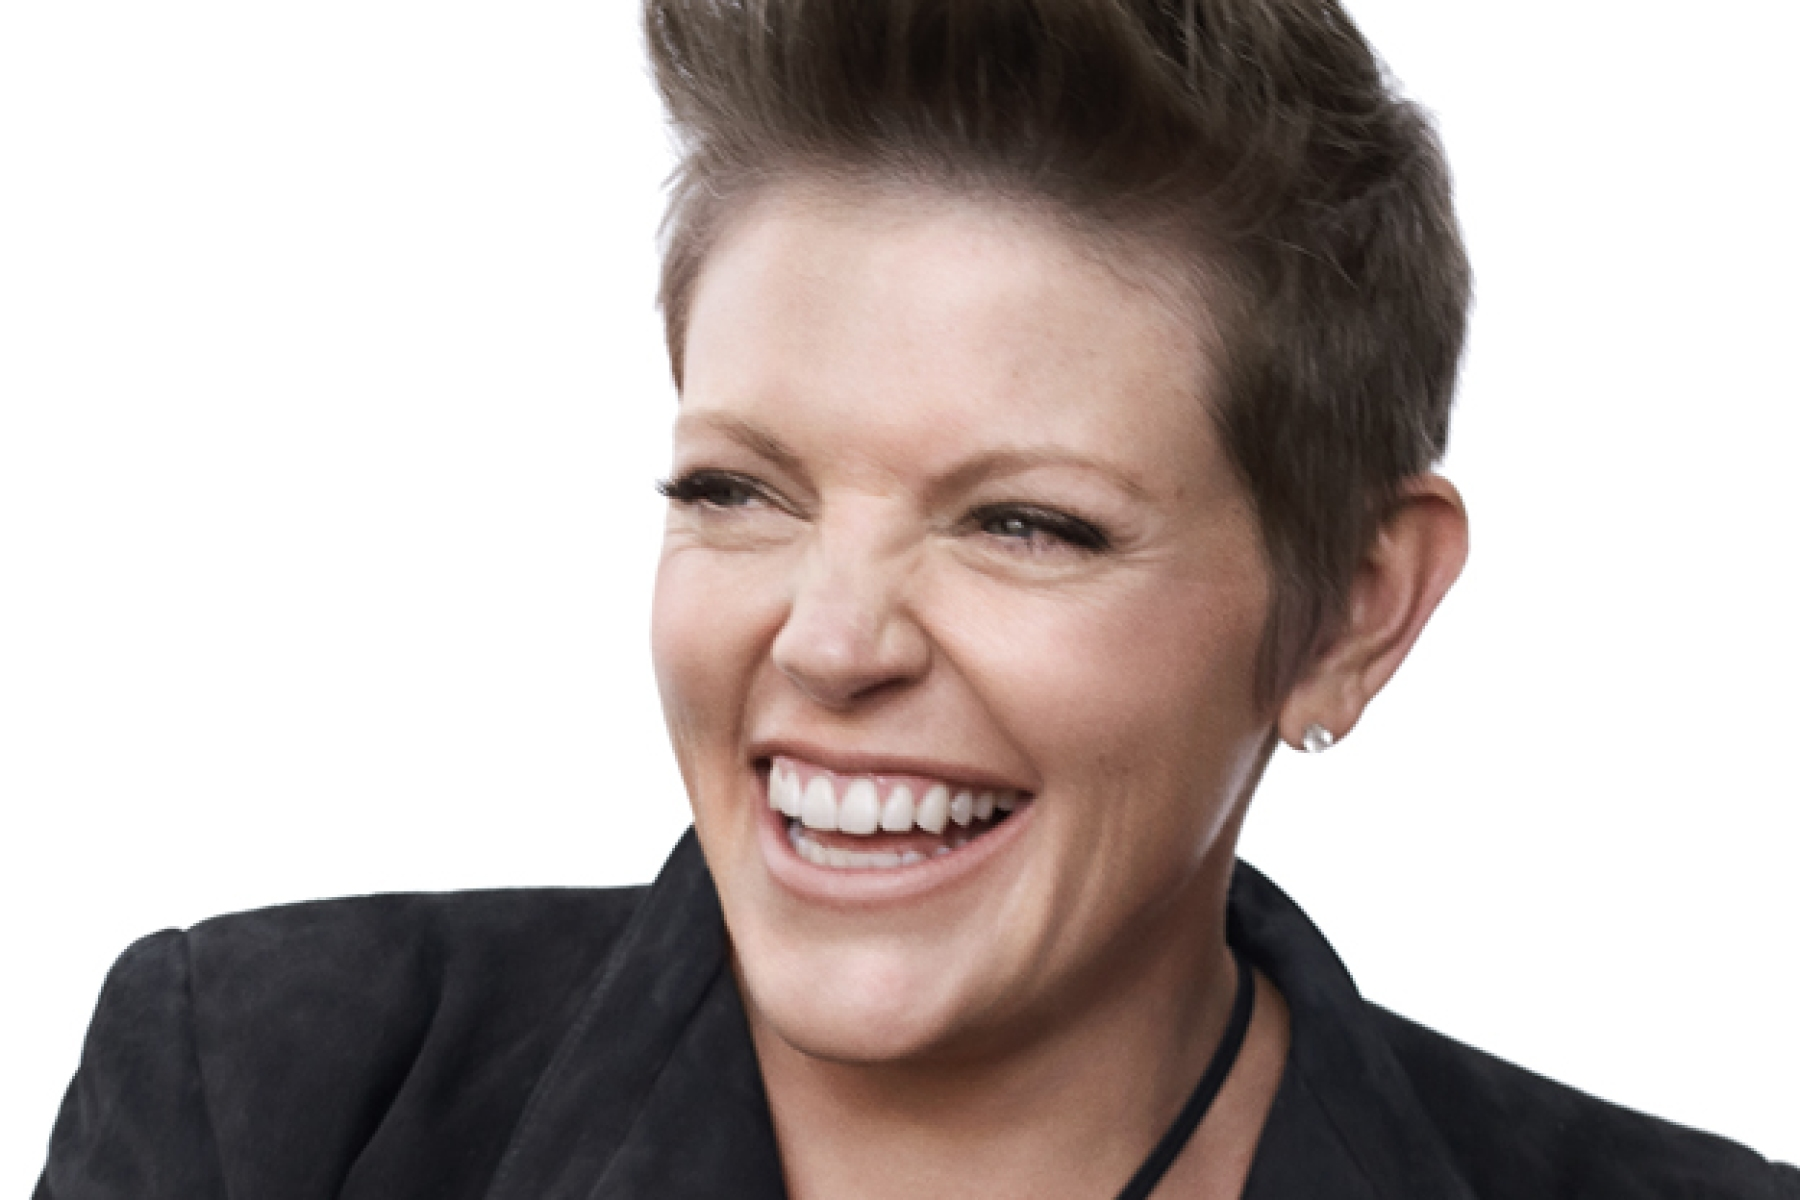 Natalie Maines: A Dixie Chick Declares War on Nashville - Rolling Stone